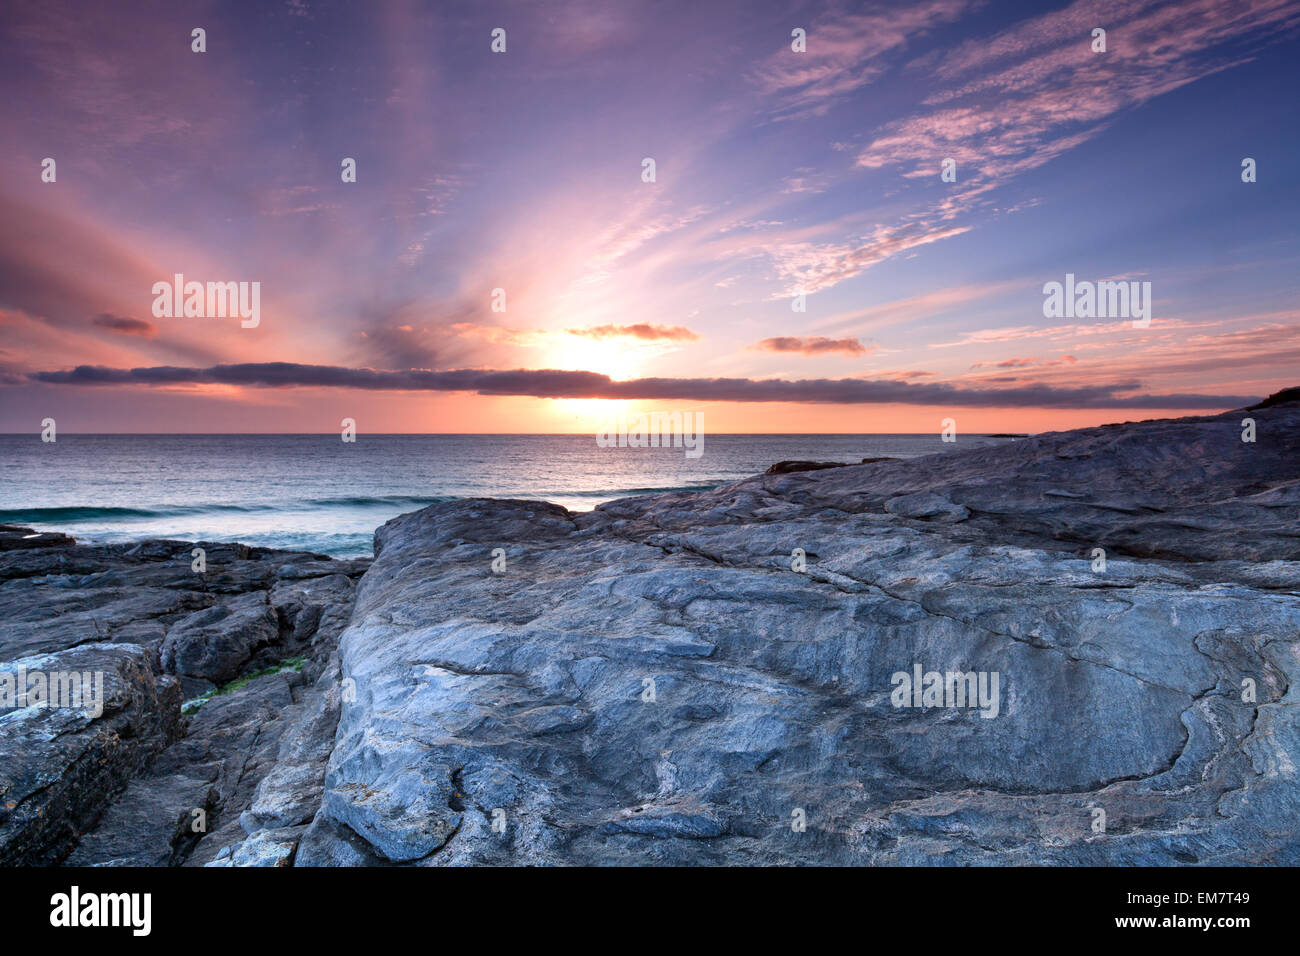 Rugged coast at Isle of Barra, Outer Hebrides of Scotland - Stock Image